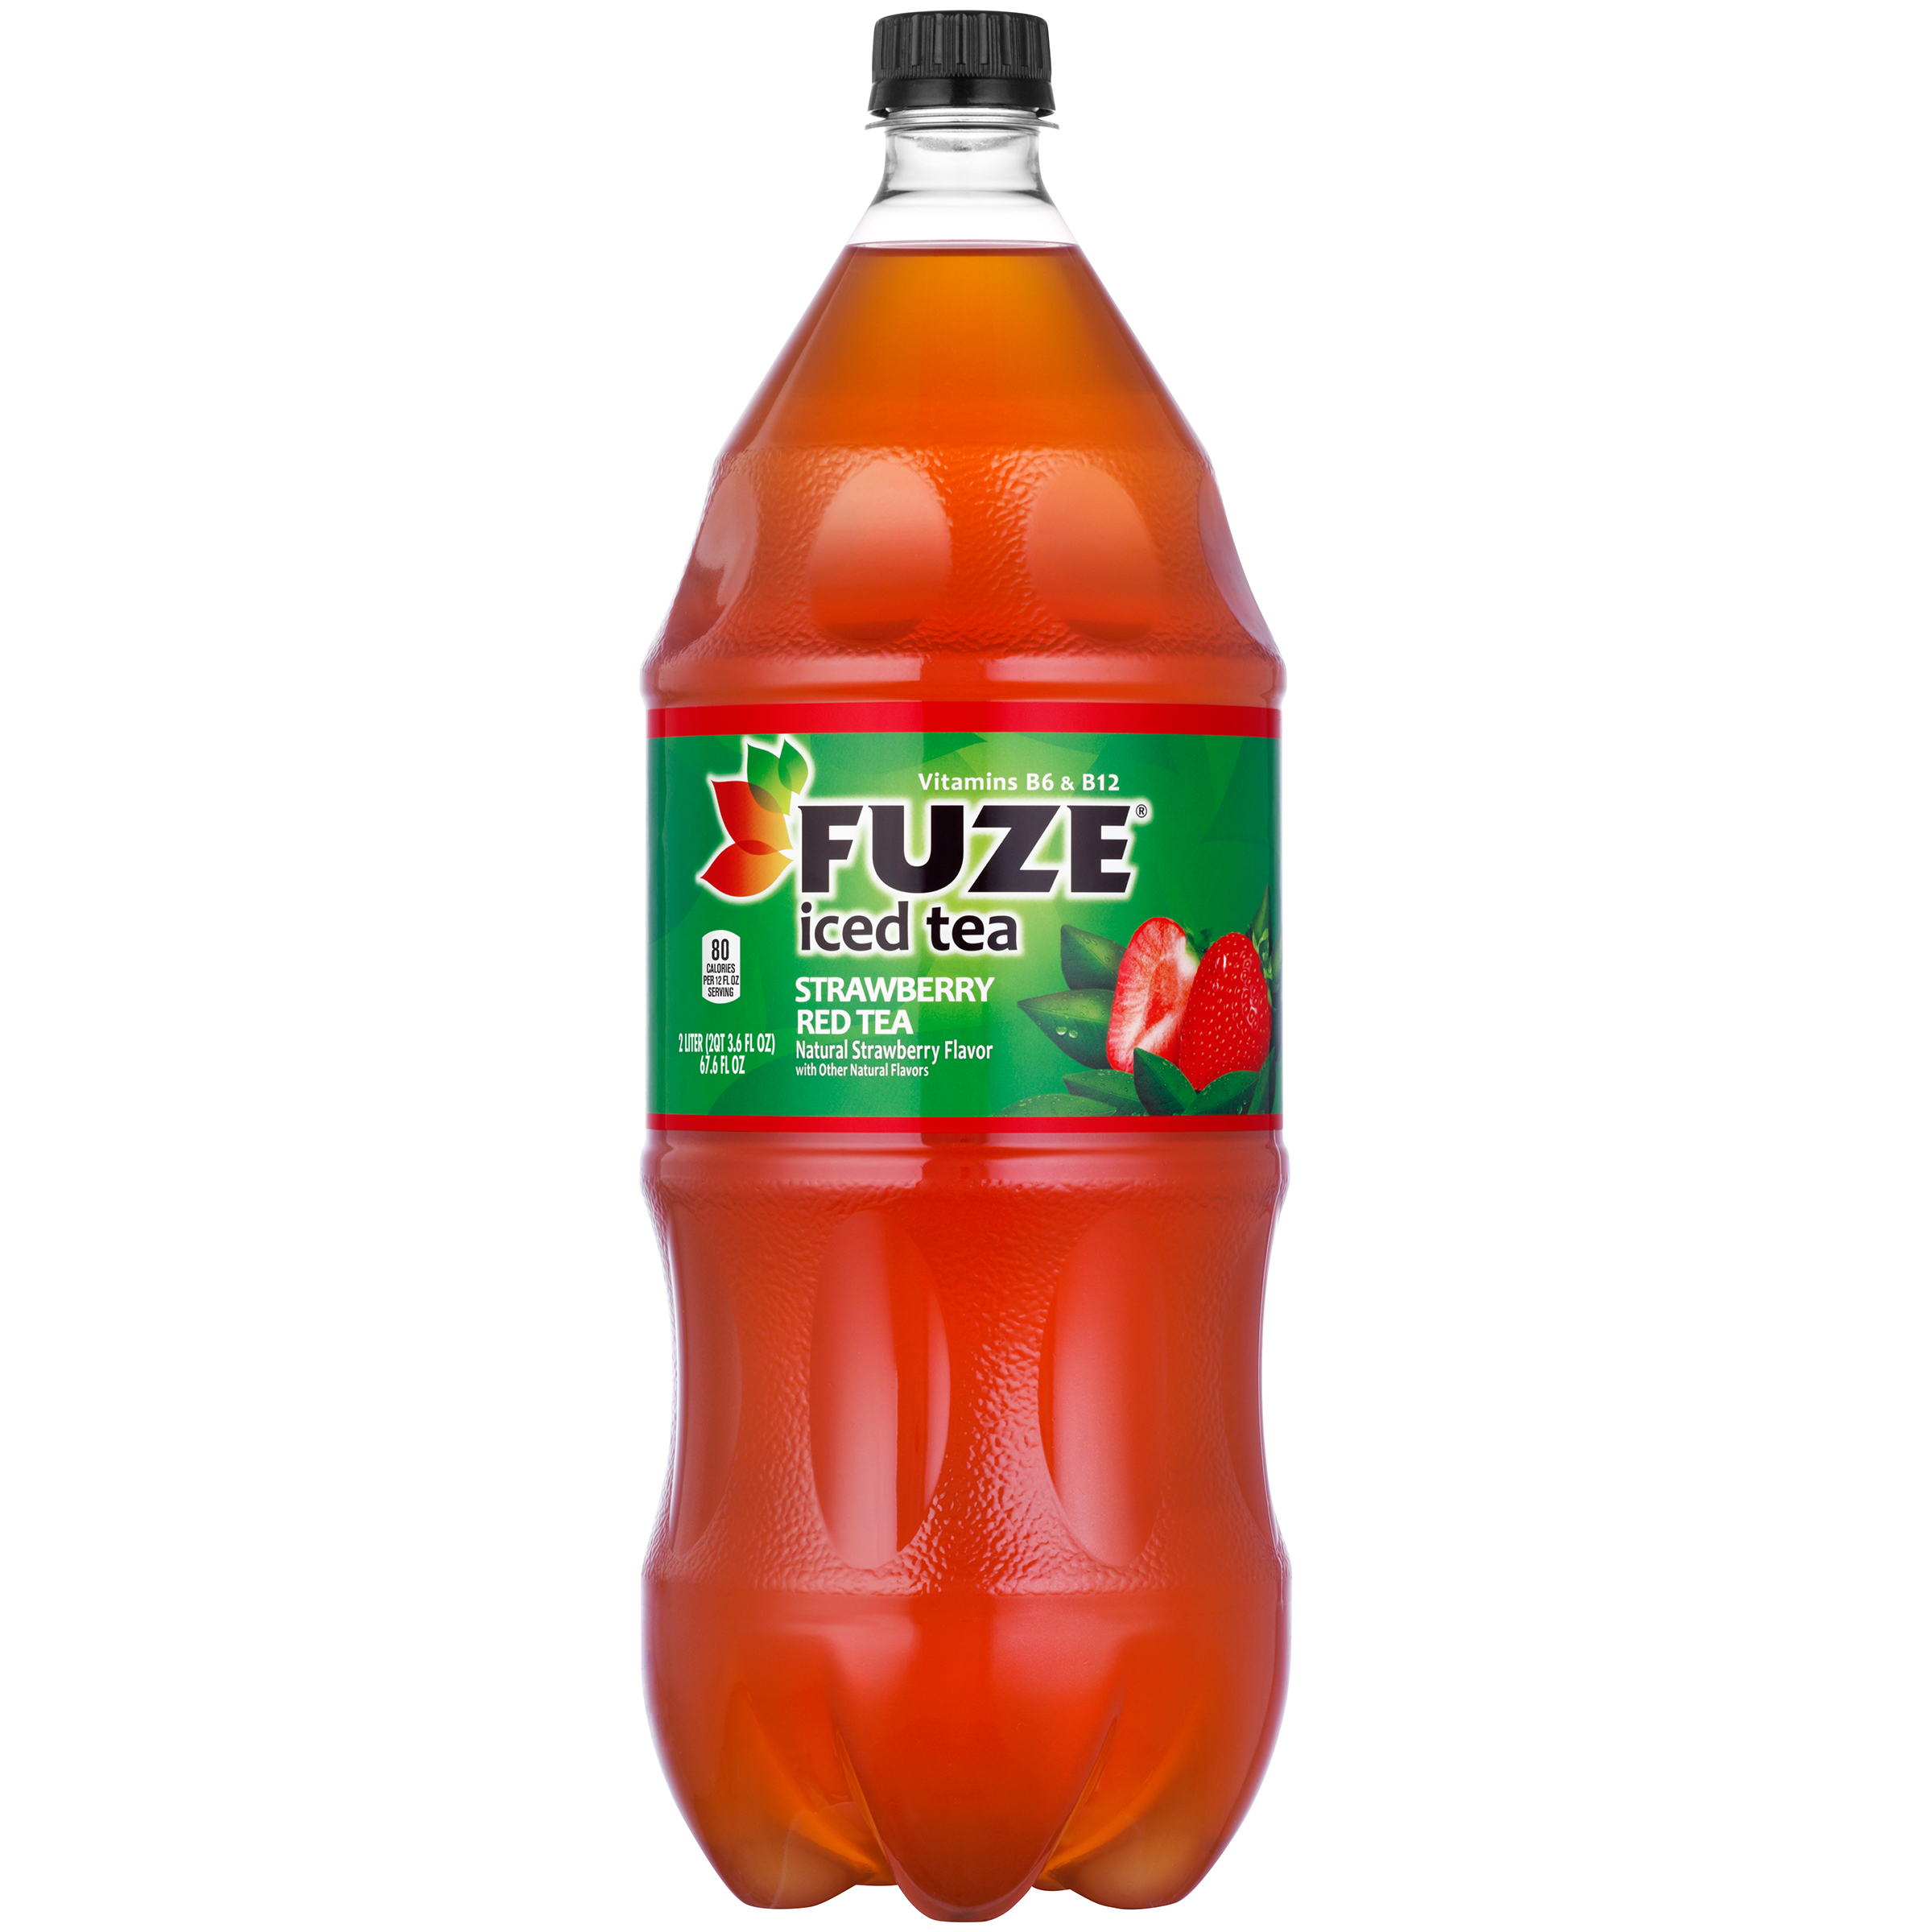 Fuze Iced Tea Strawberry Red Tea Bottle, 2 Liter